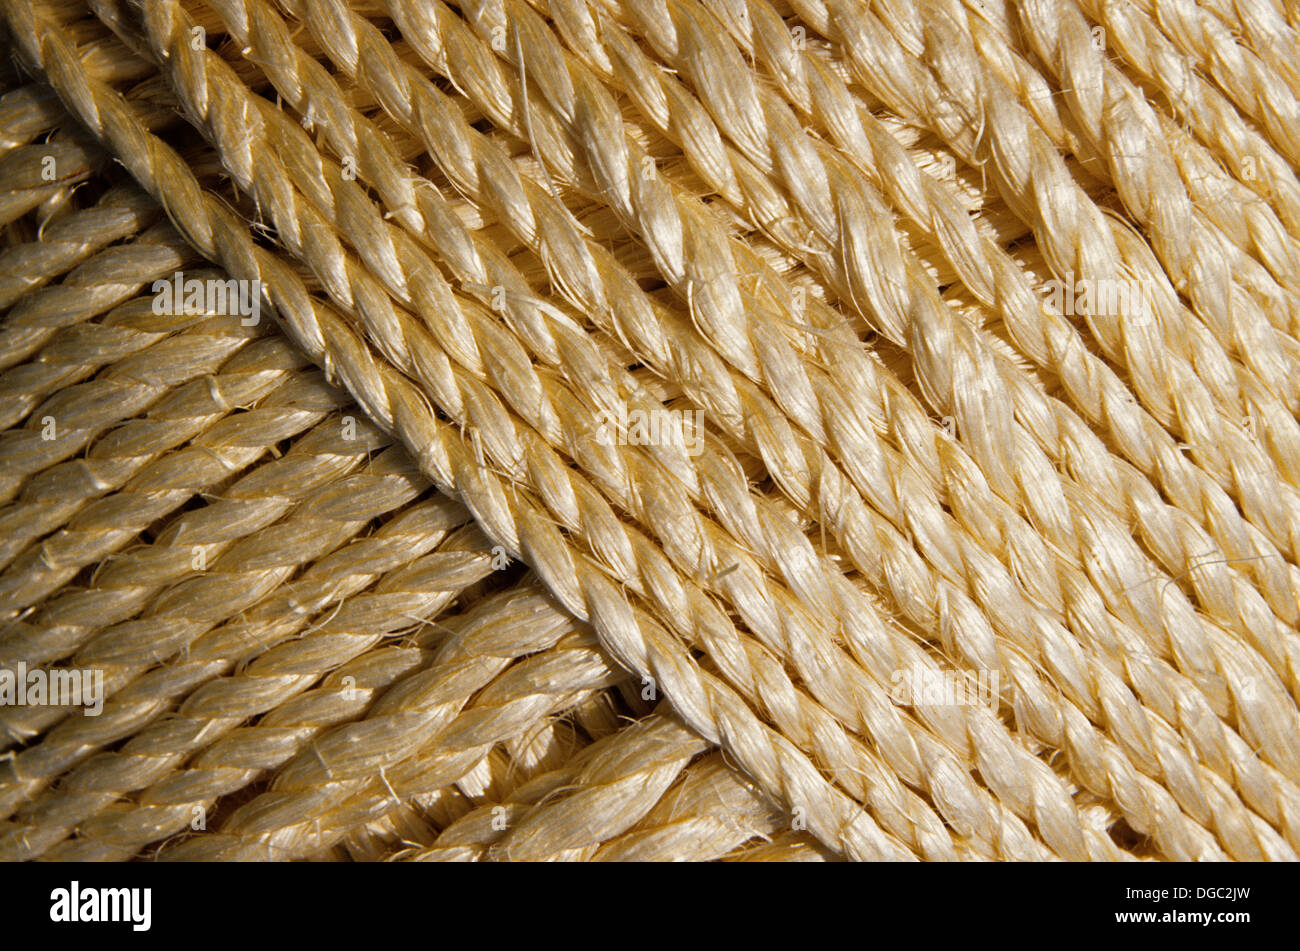 twine string cord hemp cable twisted - Stock Image